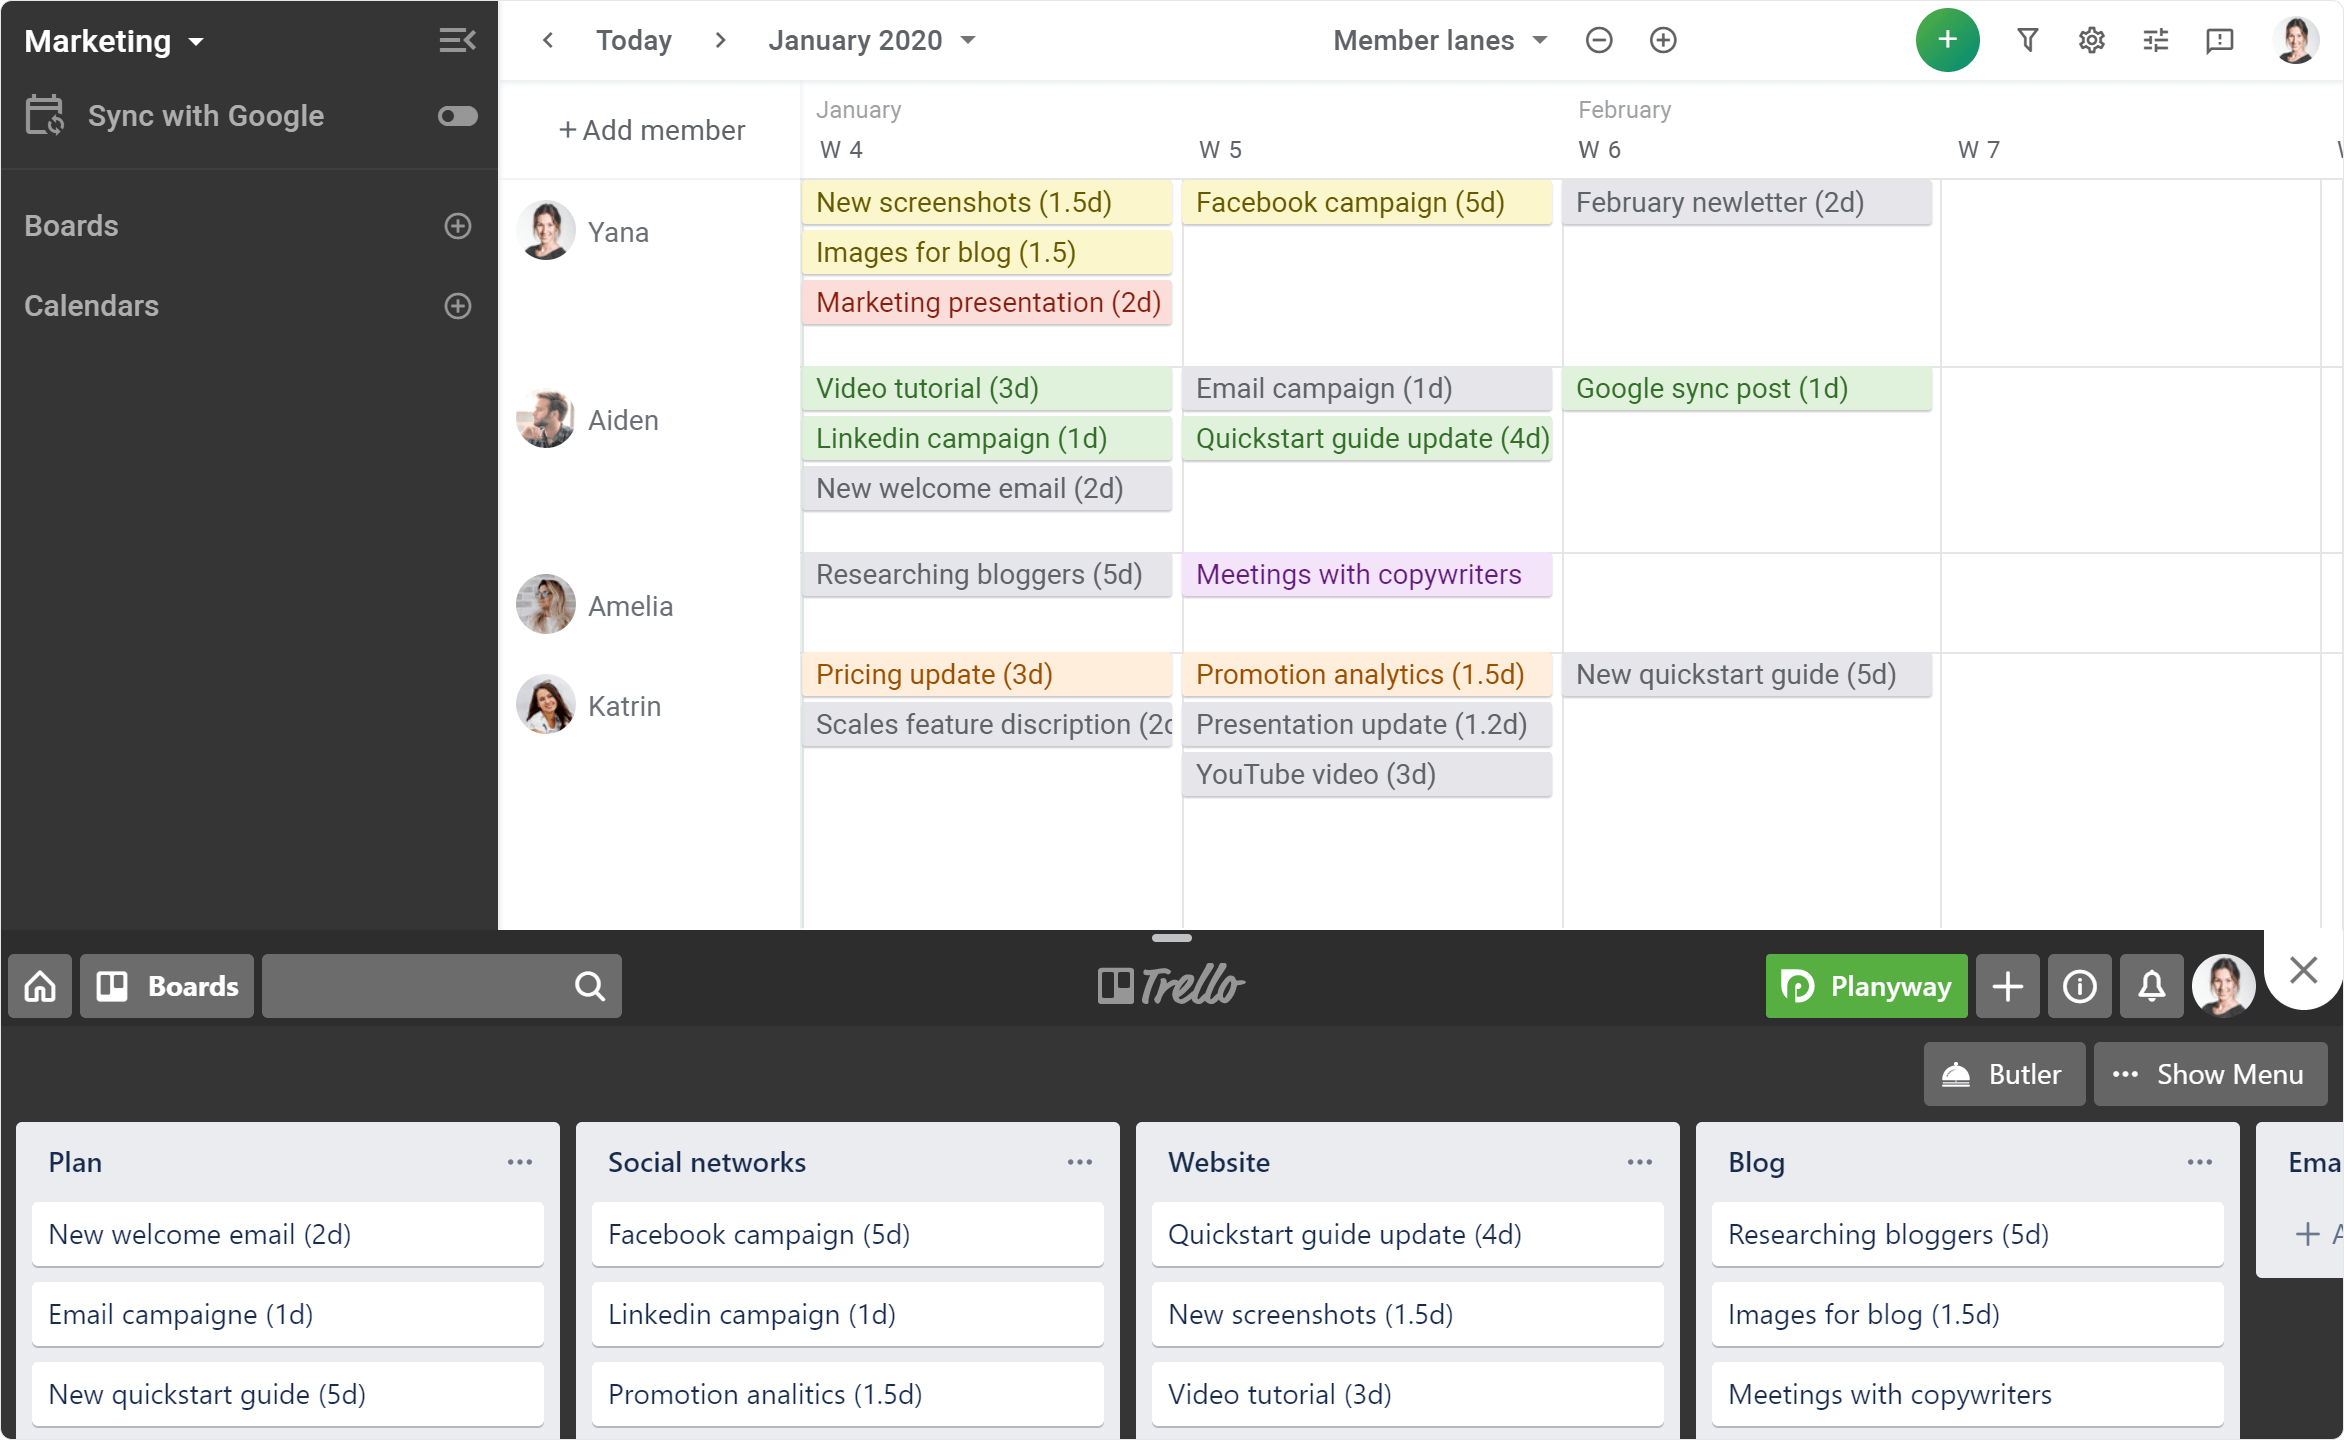 team-calendar-for-agile-weekly-planning-screenshot image